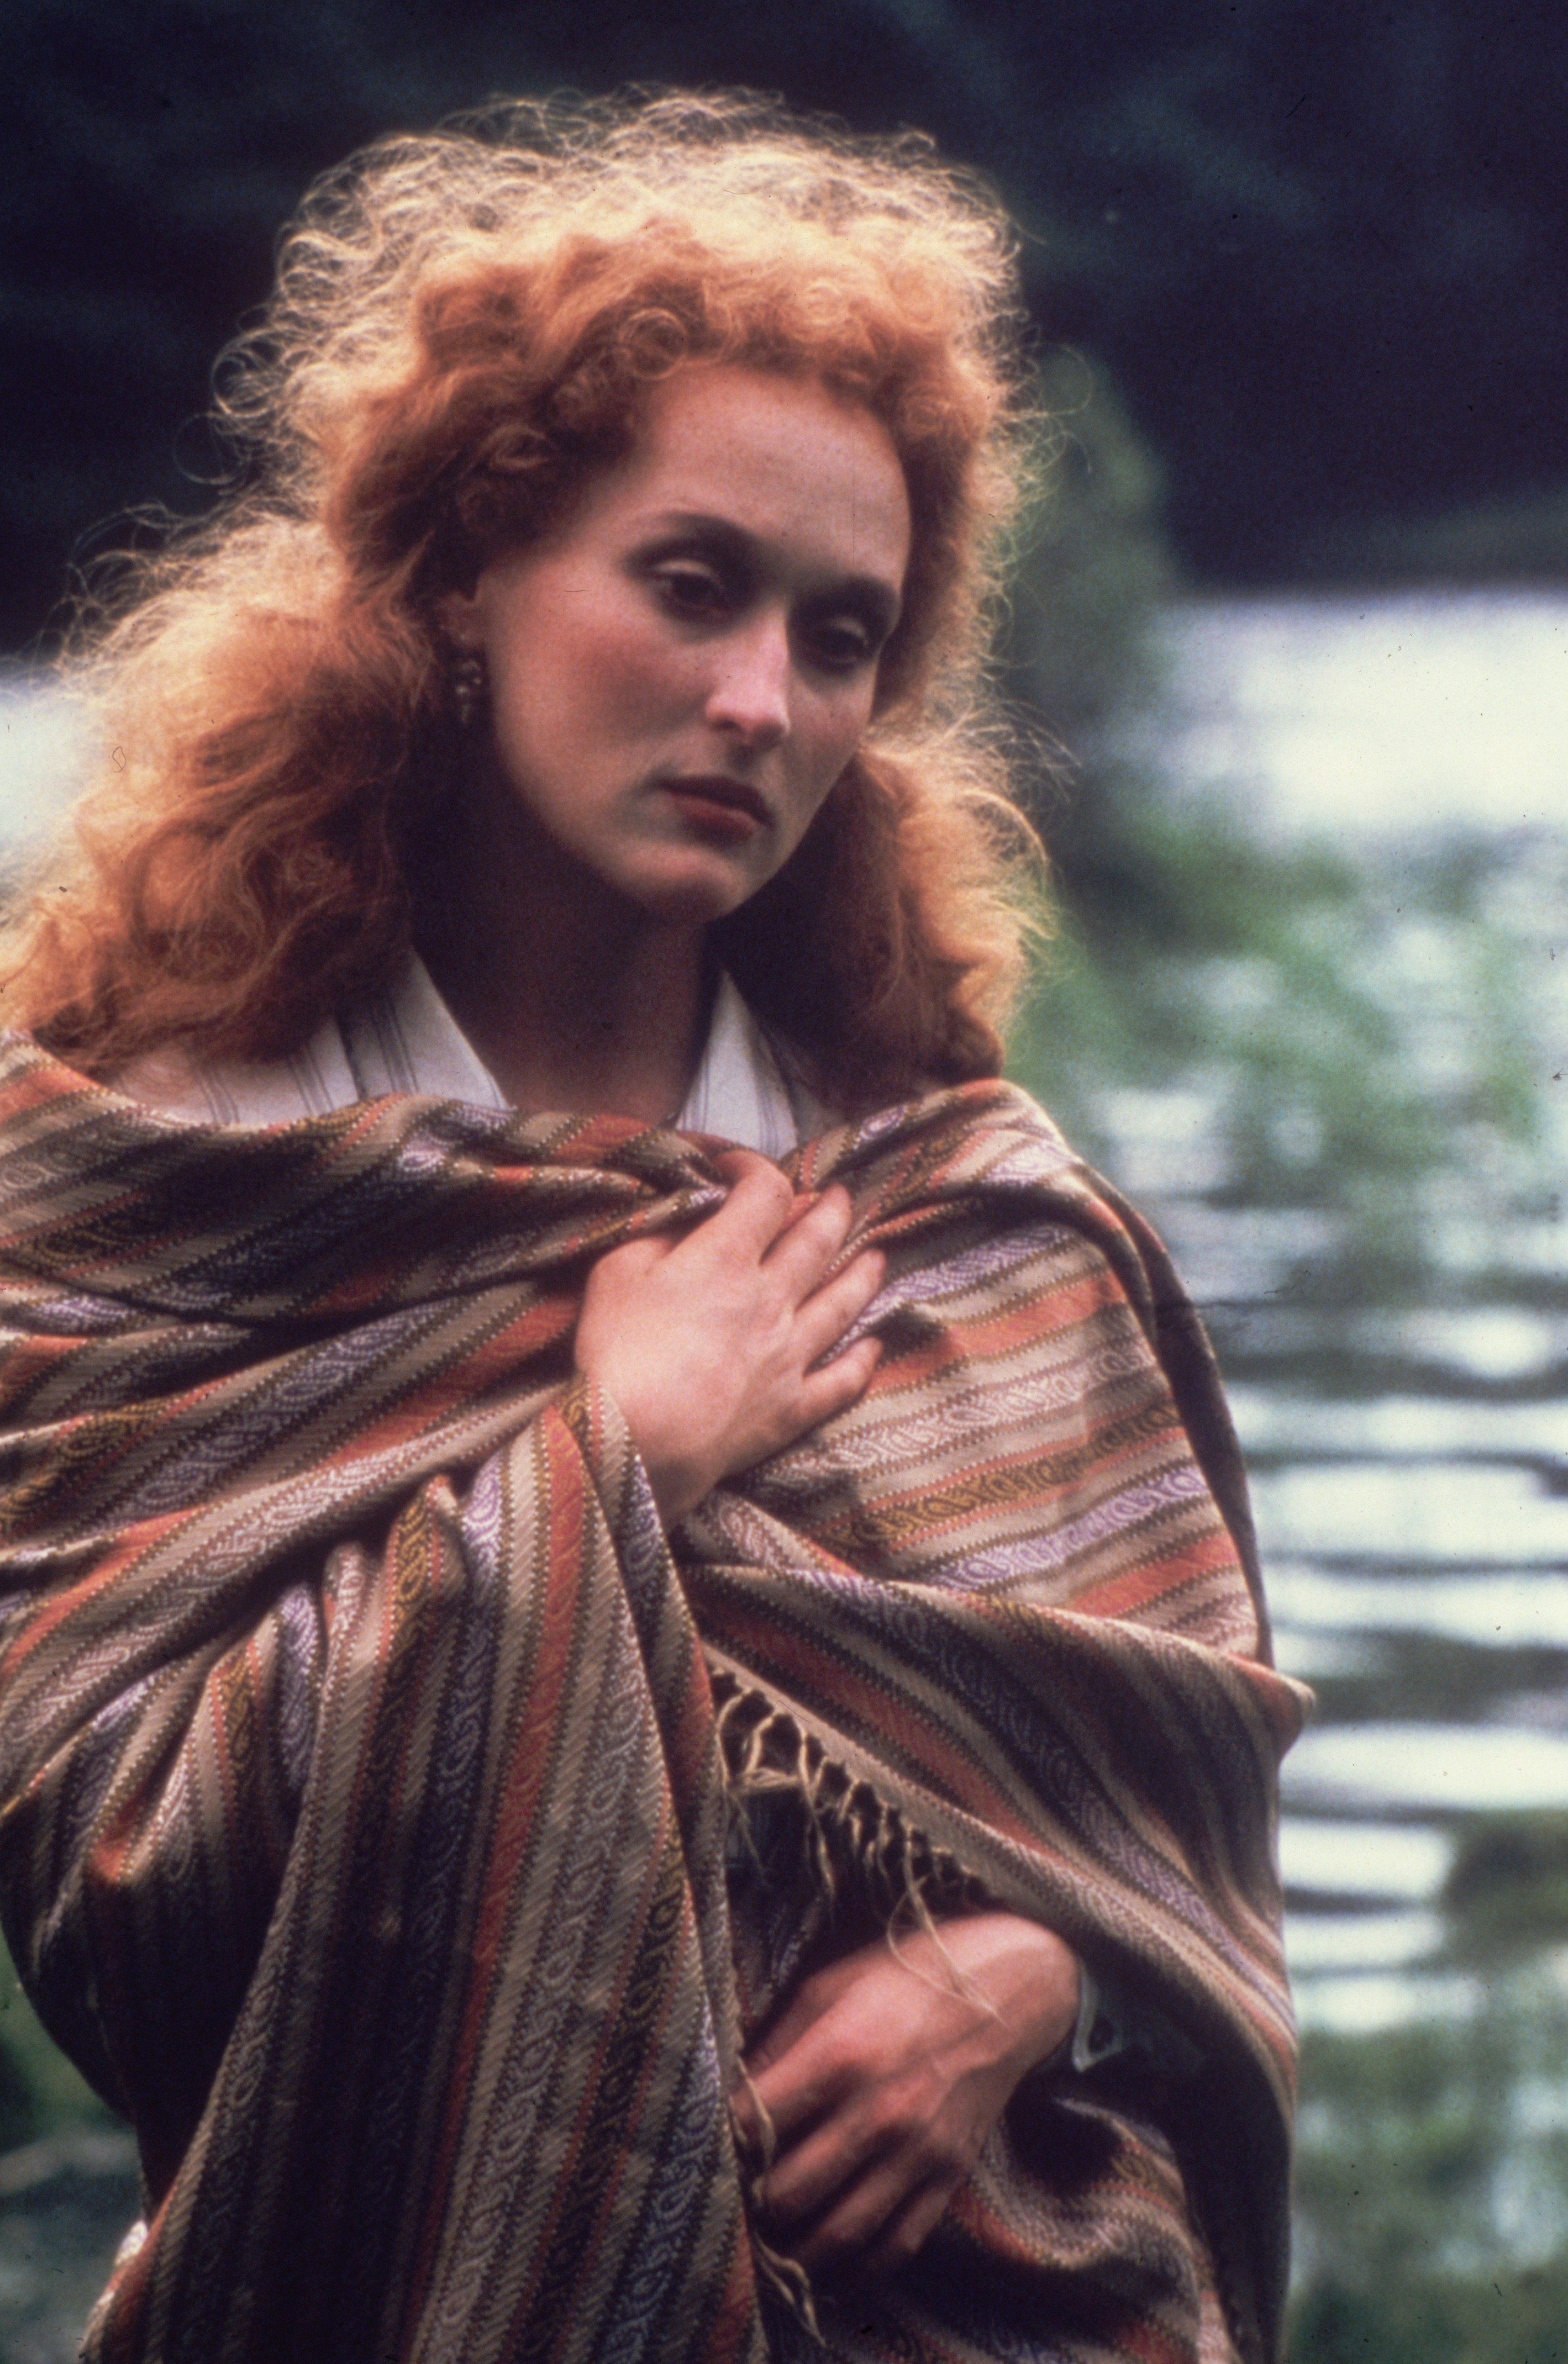 Meryl Streep In Her Younger Years With Red Hair (PHOTO)